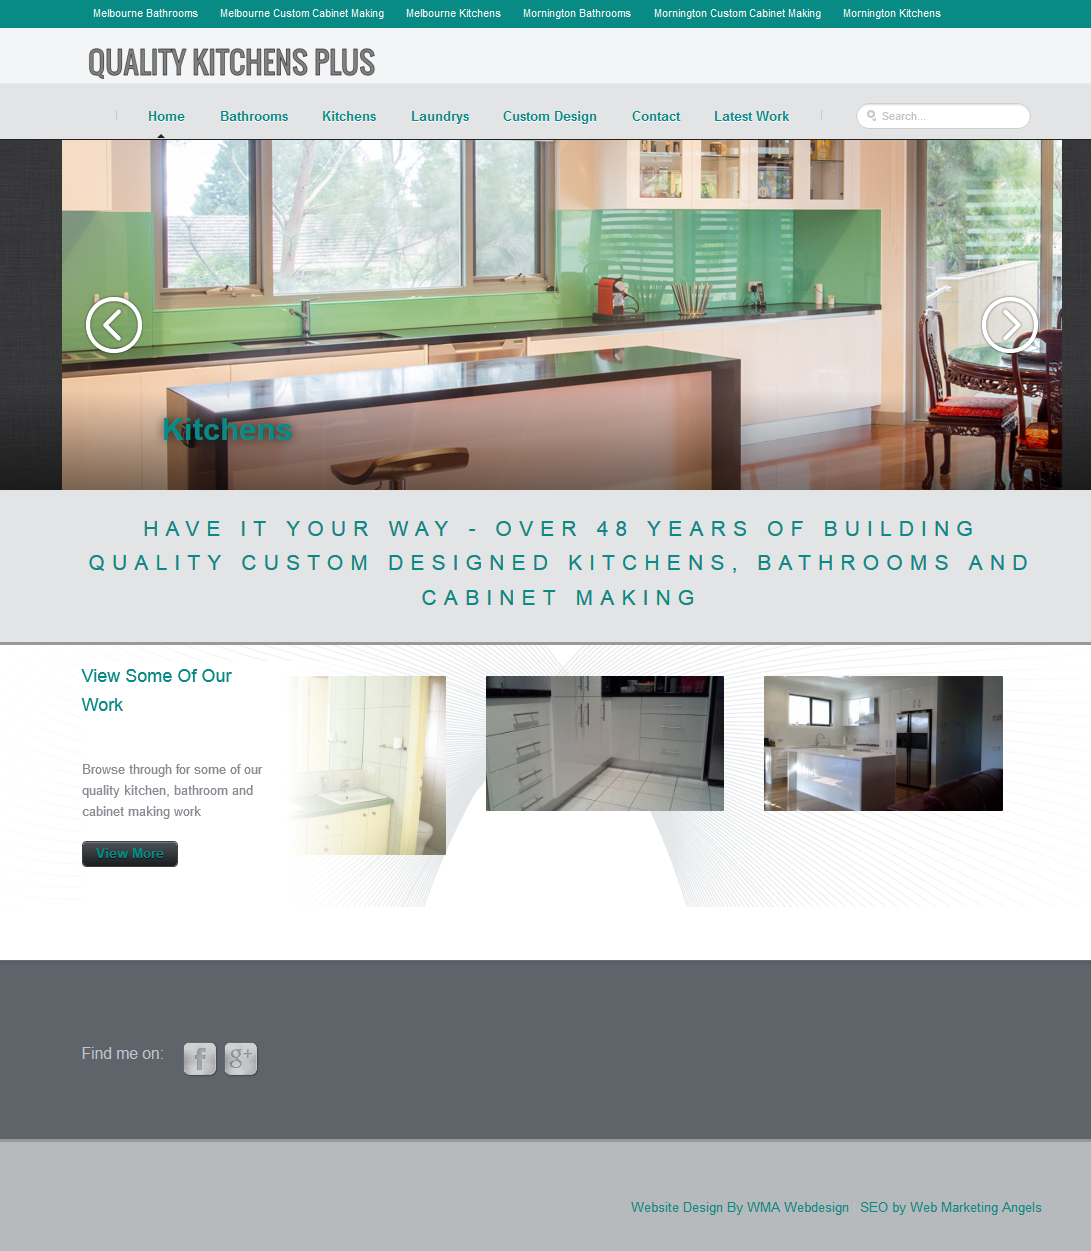 Quality Kitchens Plus - Quality Kitchens Plus are specialists in ...